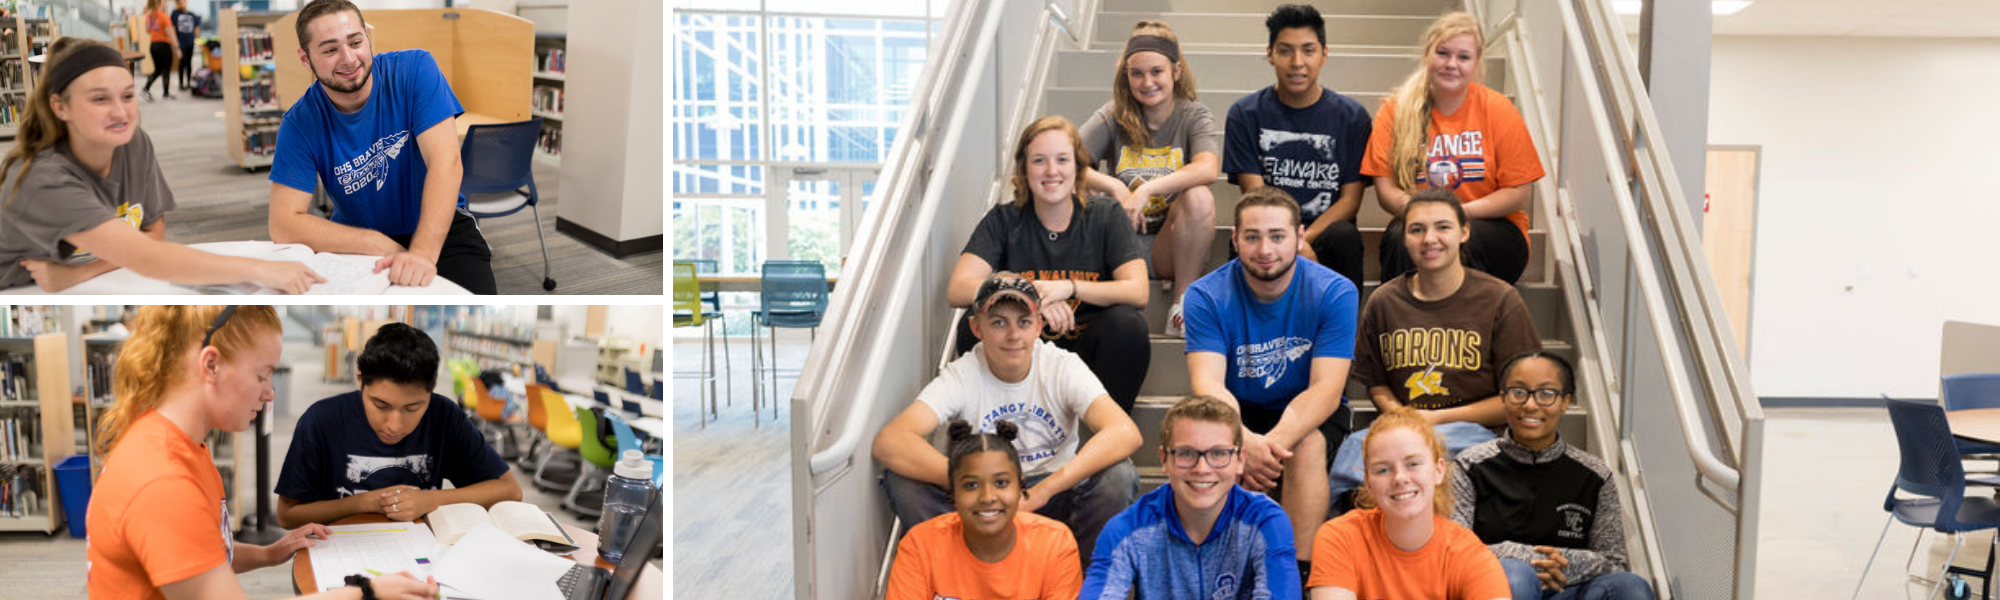 Group of students sitting on the stairs together